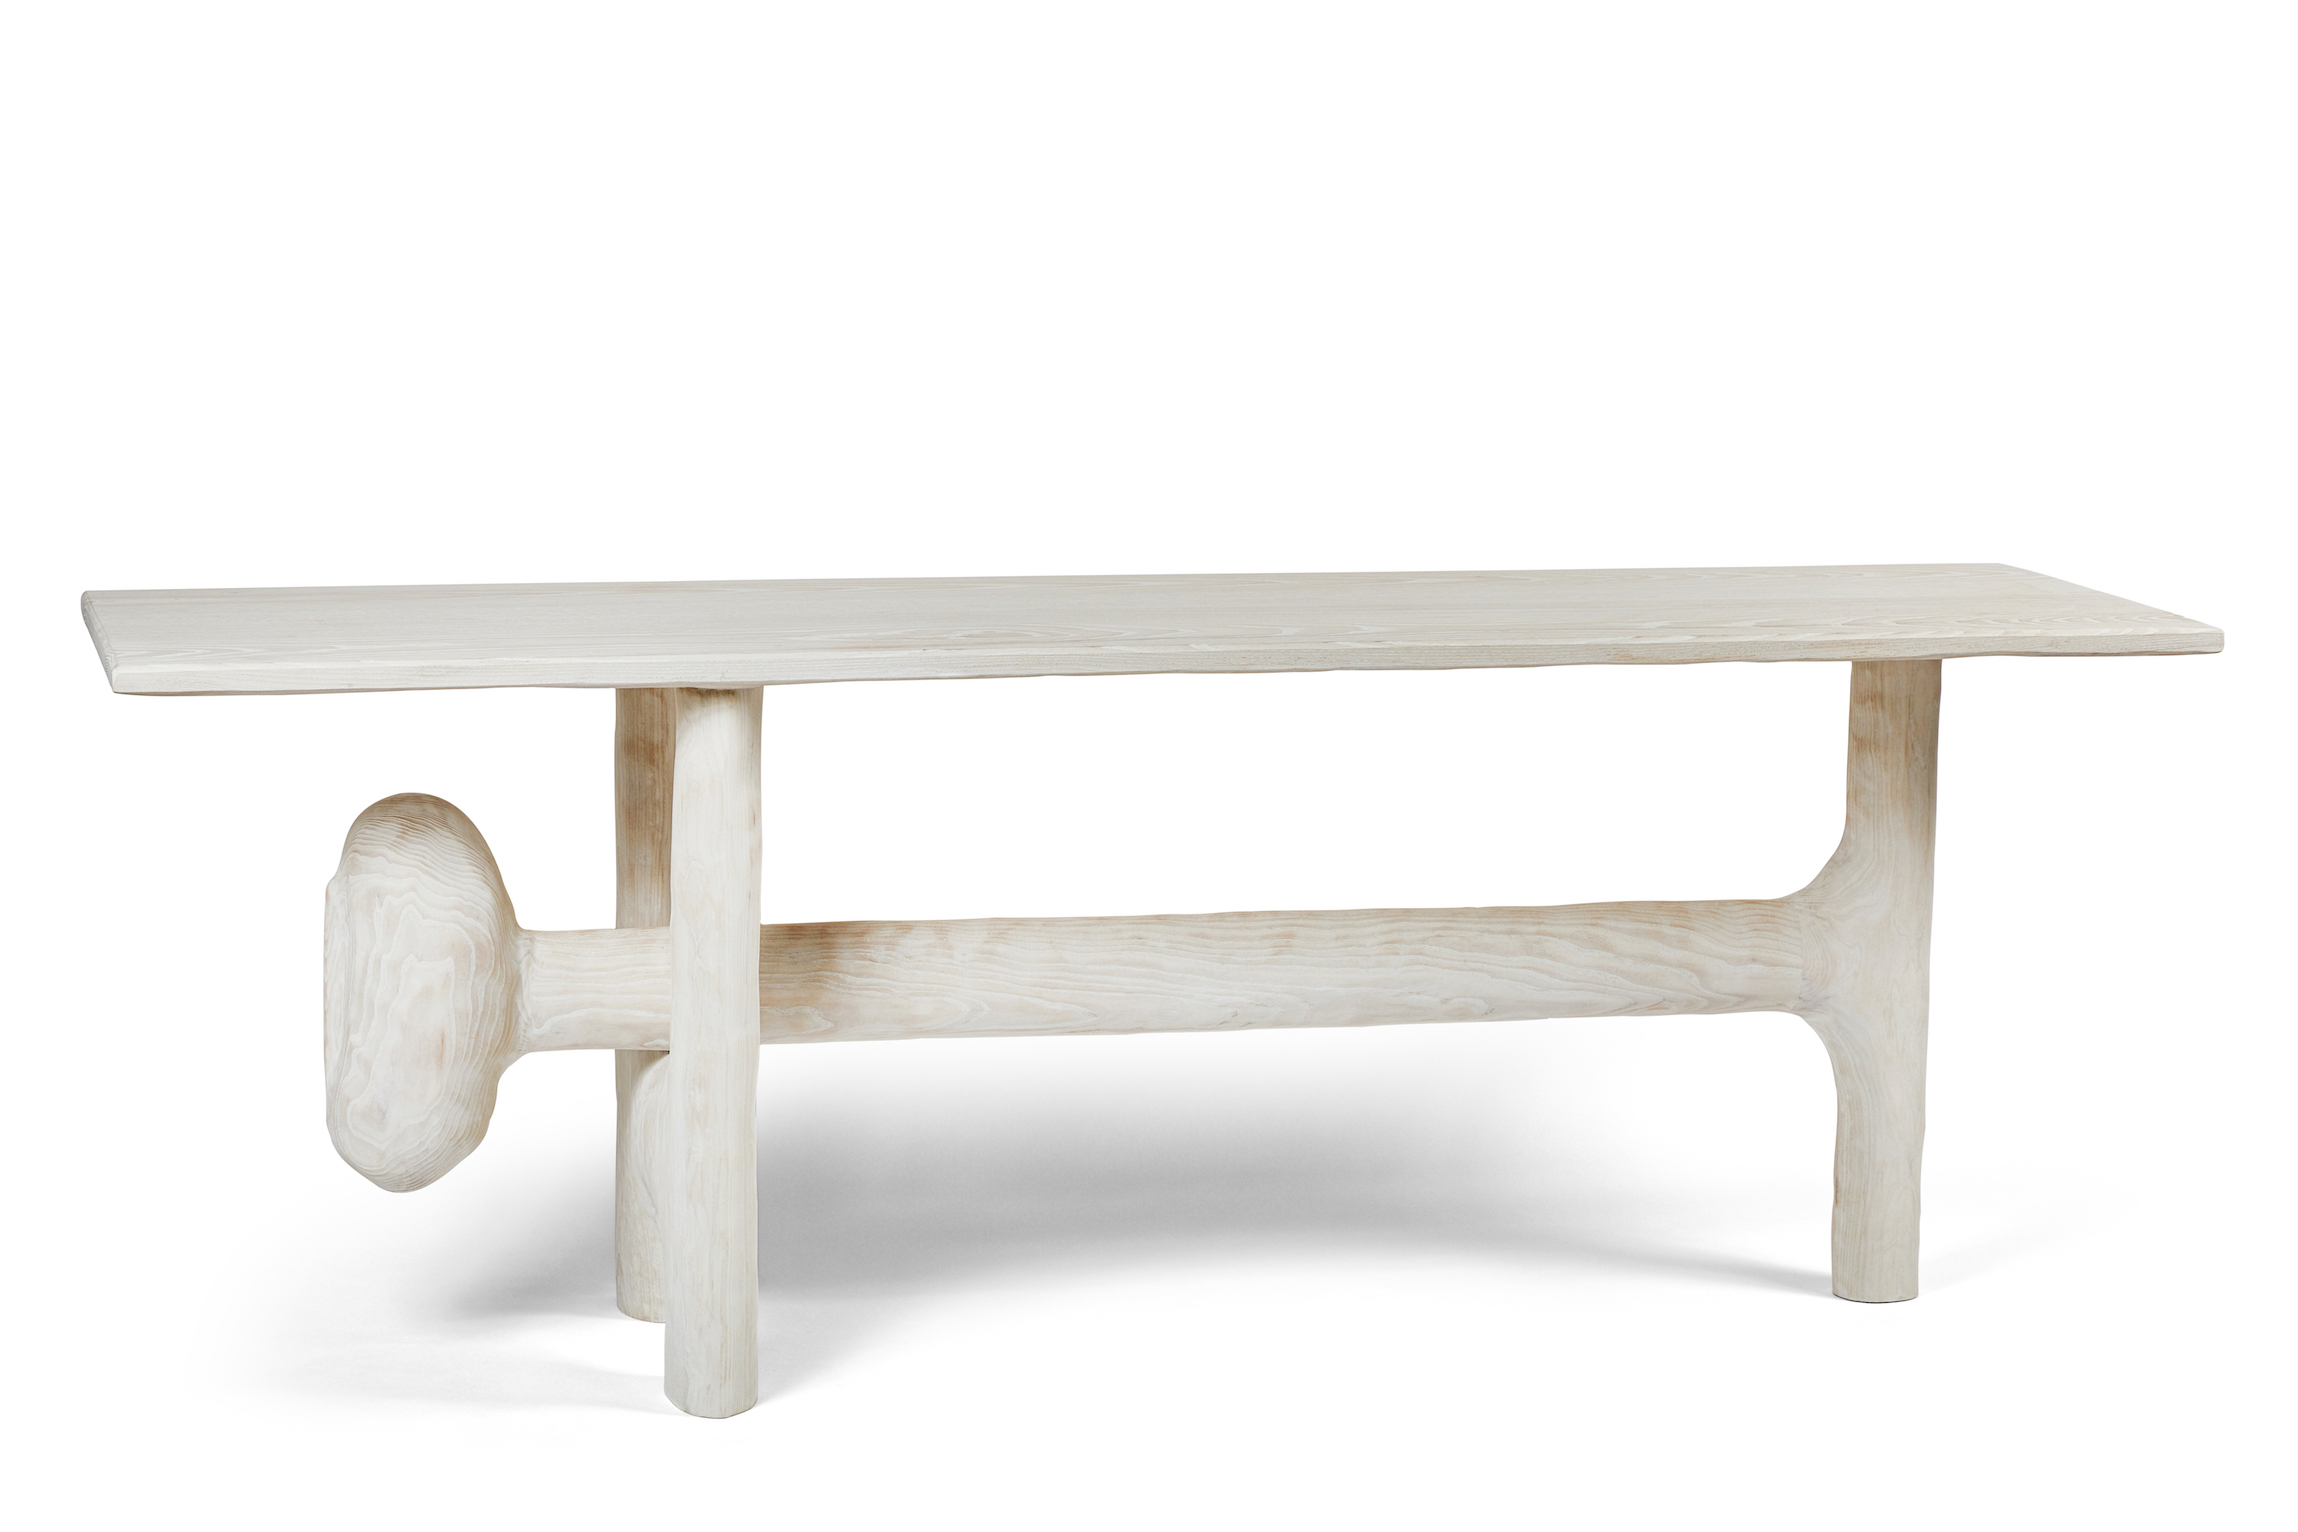 SCULPTURE 004 CONSOLE TABLE (23).jpg